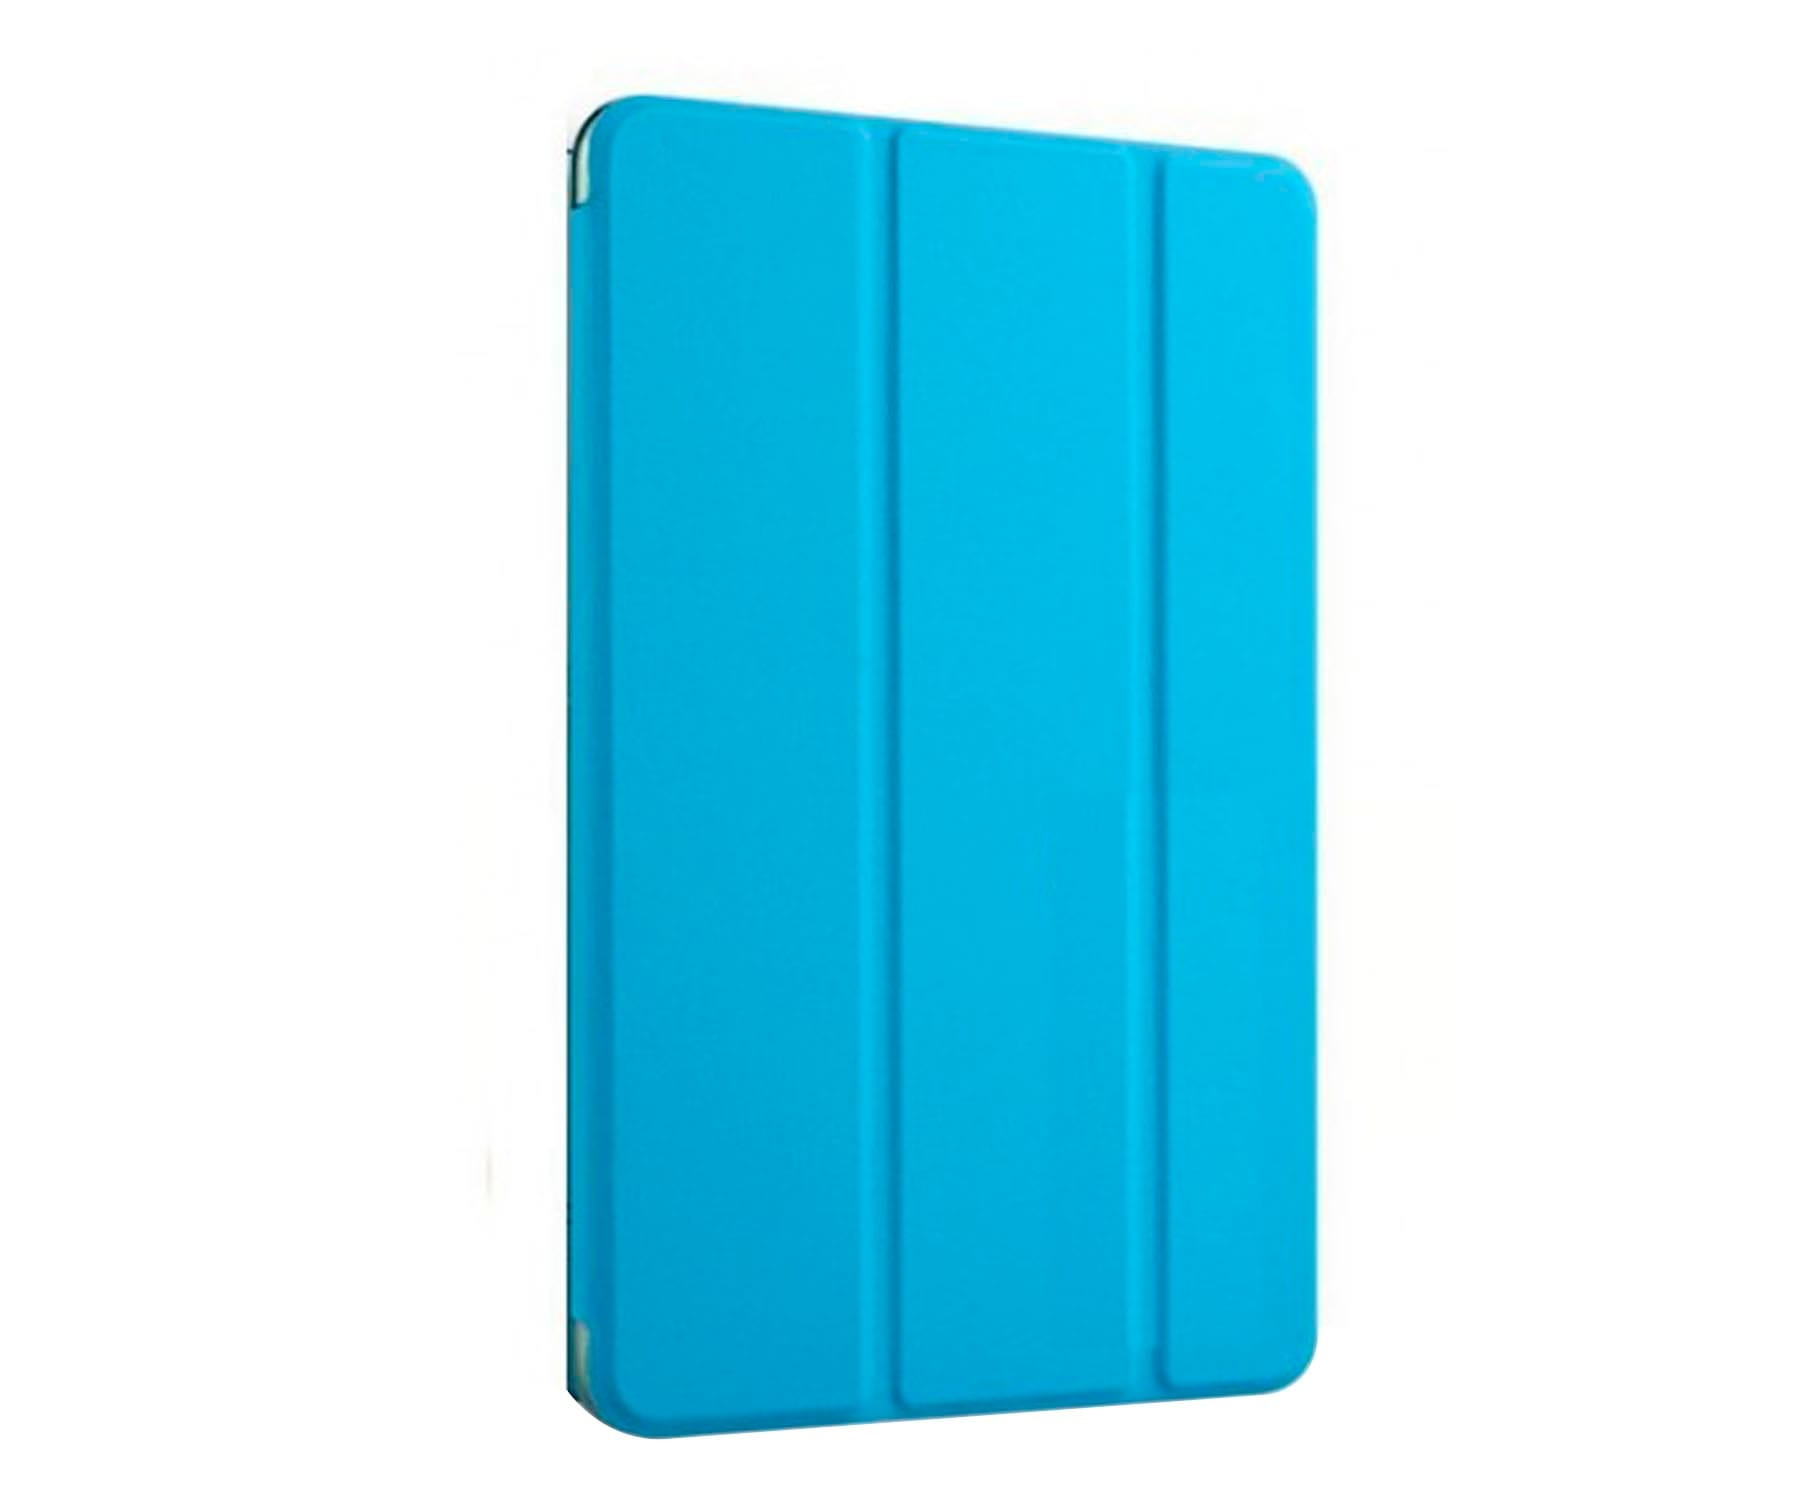 JC FUNDA SLIM AZUL PARA TABLET SAMSUNG GALAXY TAB A7 20200